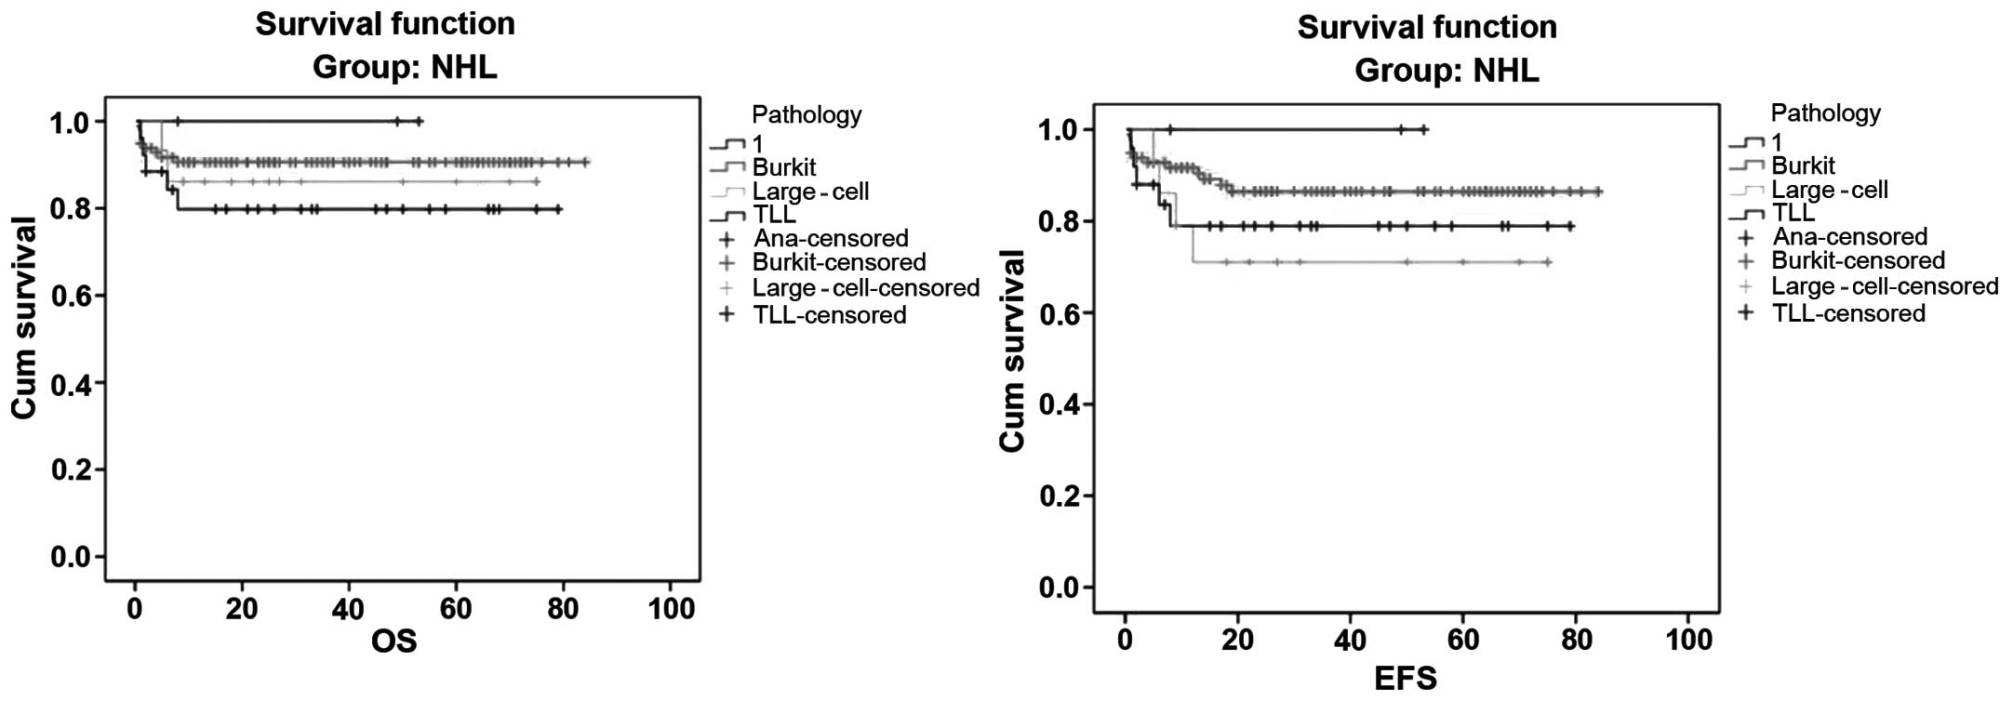 hight resolution of five year overall survival os and event free survival efs of non hodgkin lymphoma nhl according to pathological subtypes tll t cell lymphoblastic